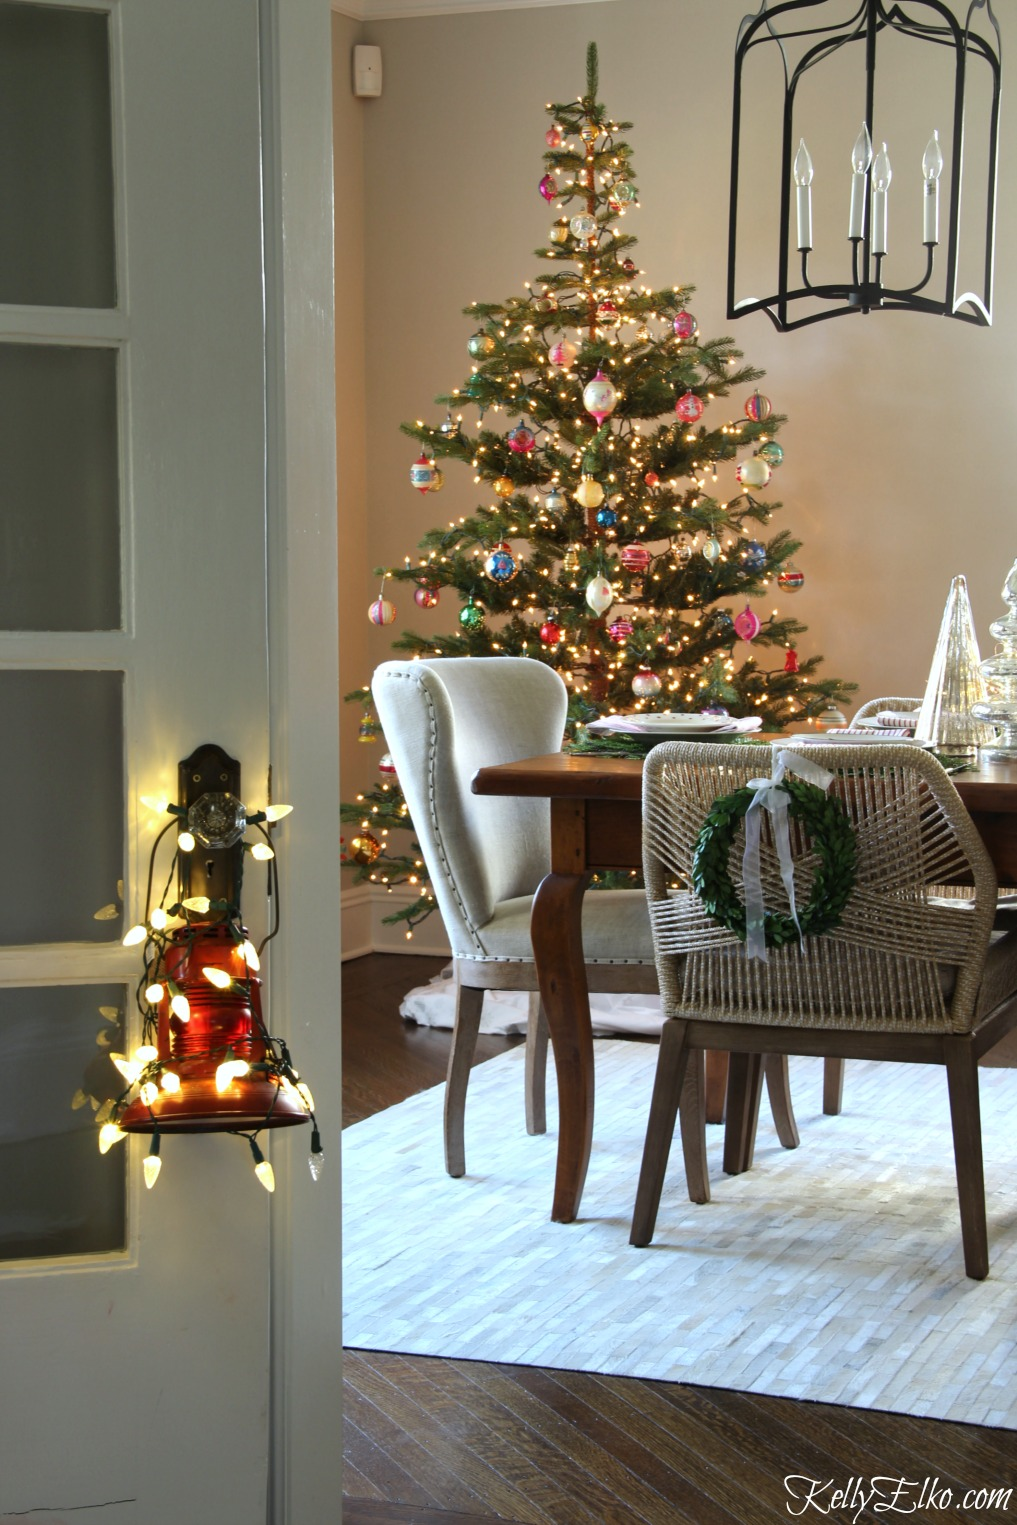 Christmas Home Tour - what a gorgeous tree filled with vintage ornaments kellyelko.com